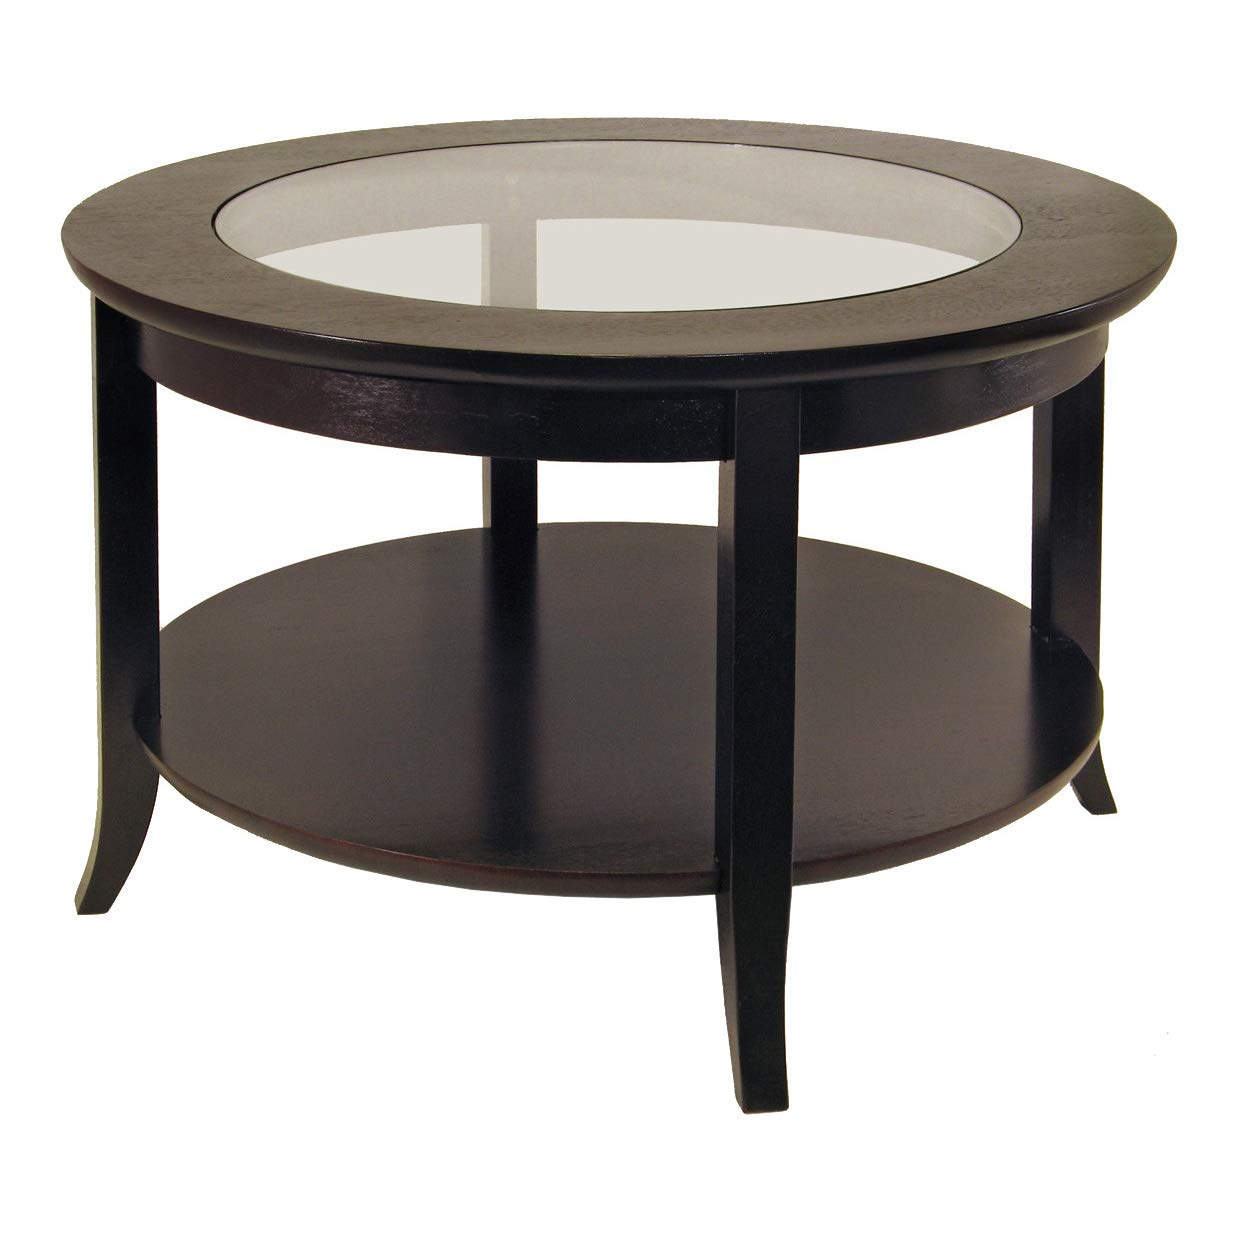 winsome wood round coffee table espresso home kitchen end corner nest tables ashley furniture marsilona primitive country ethan allen nashville white glass top dining long sofa